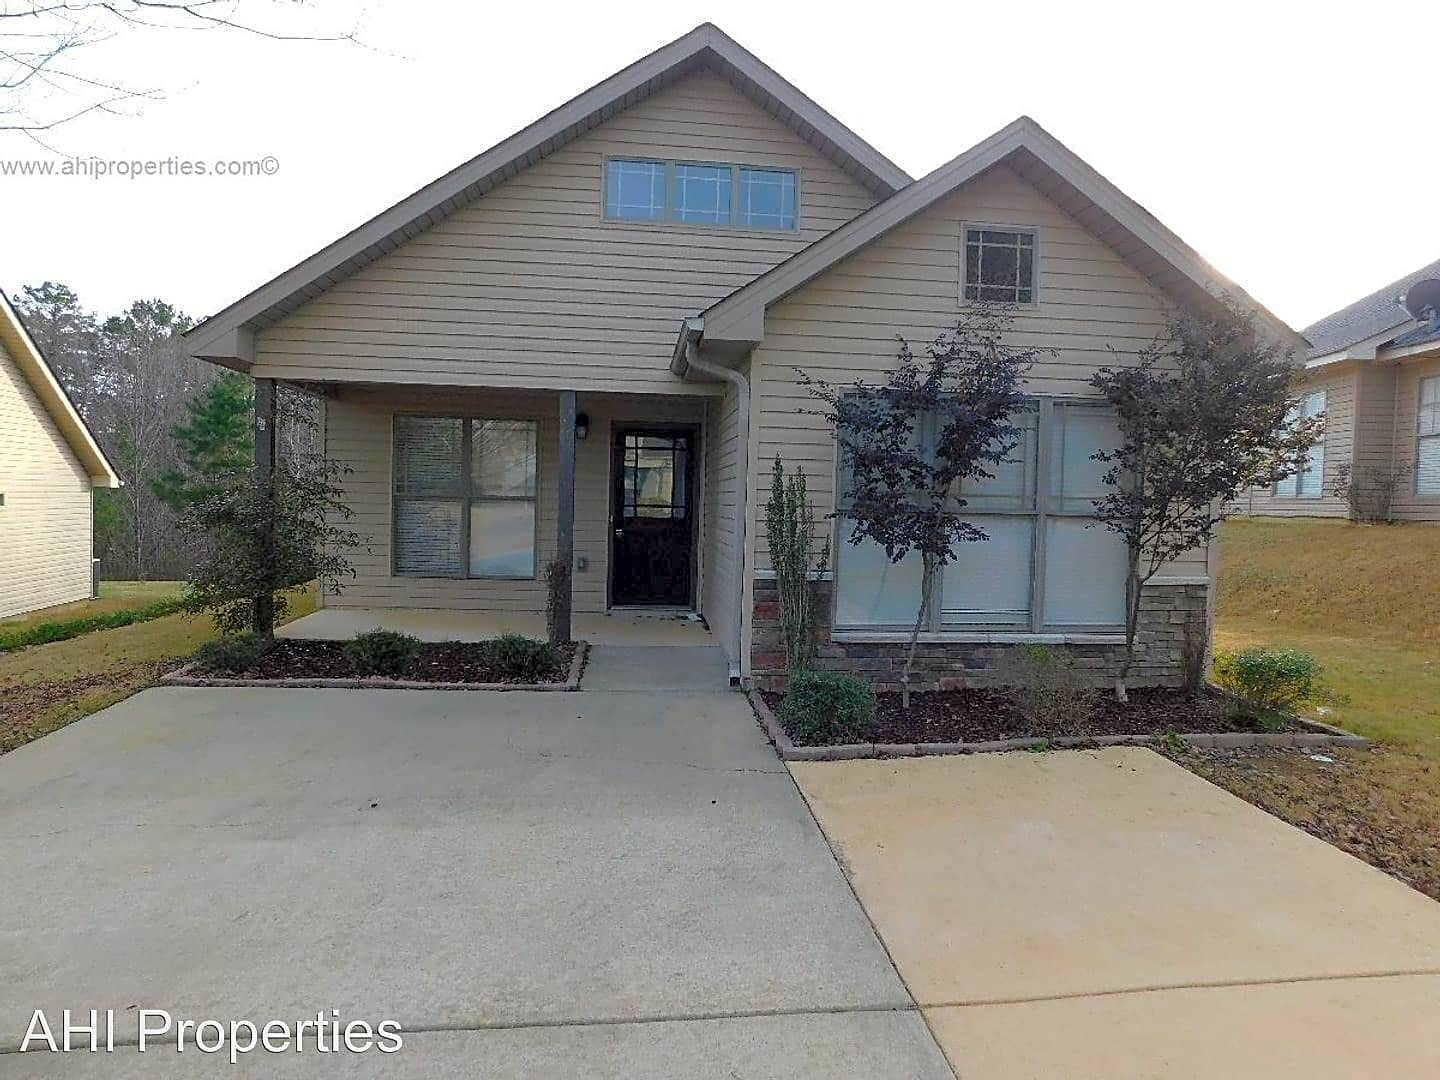 Pet Friendly for Rent in Springville